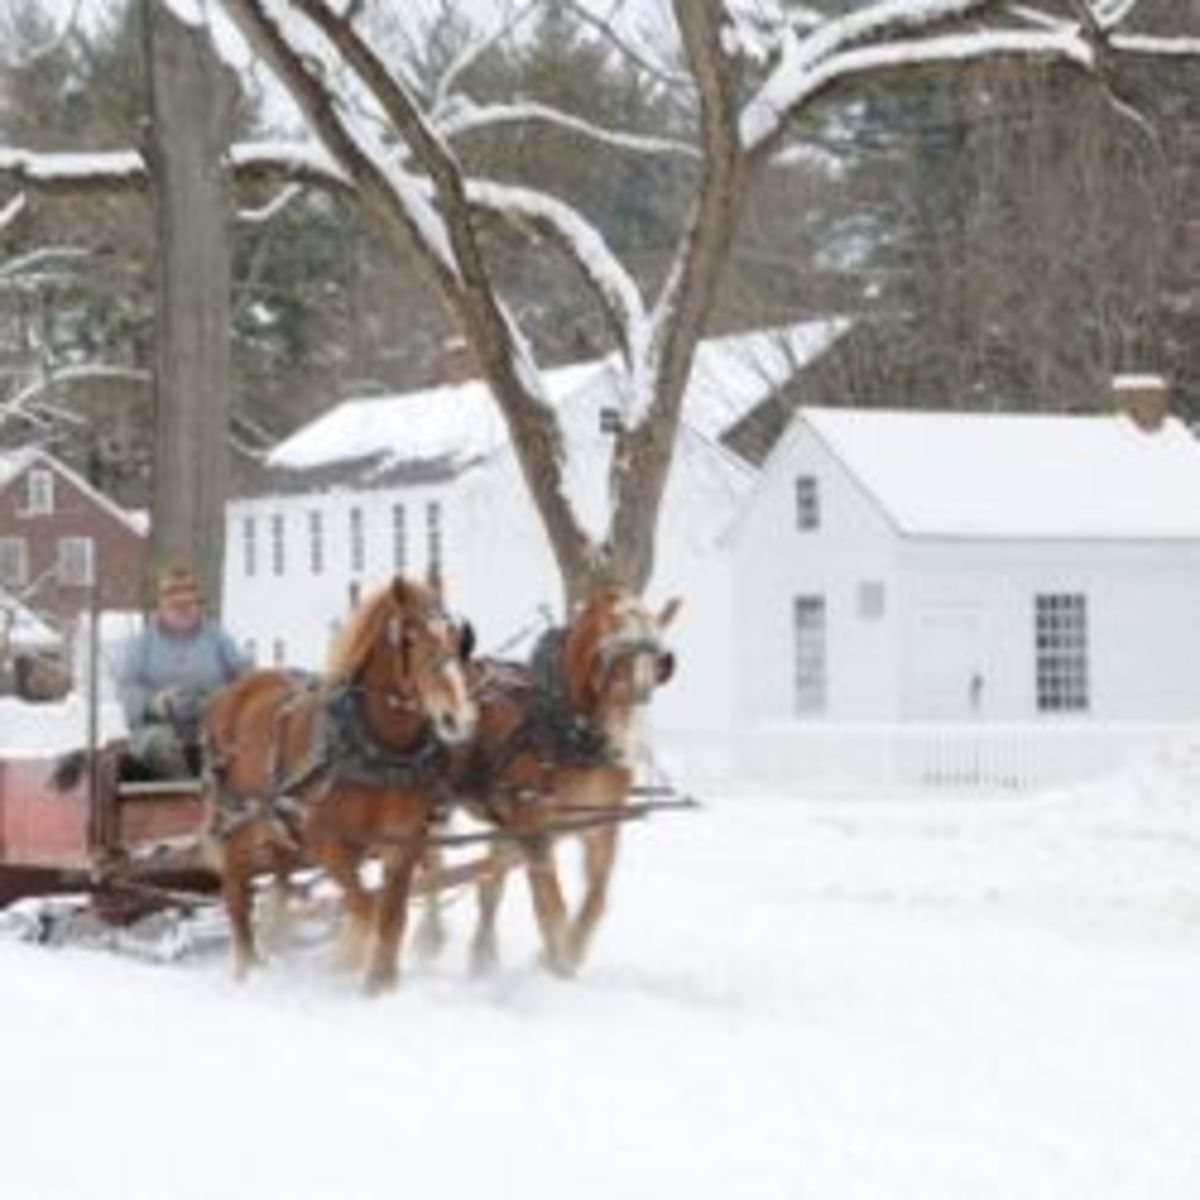 Image credit: http://thespicegarden.blogspot.com/2011/02/old-sturbridge-village.html